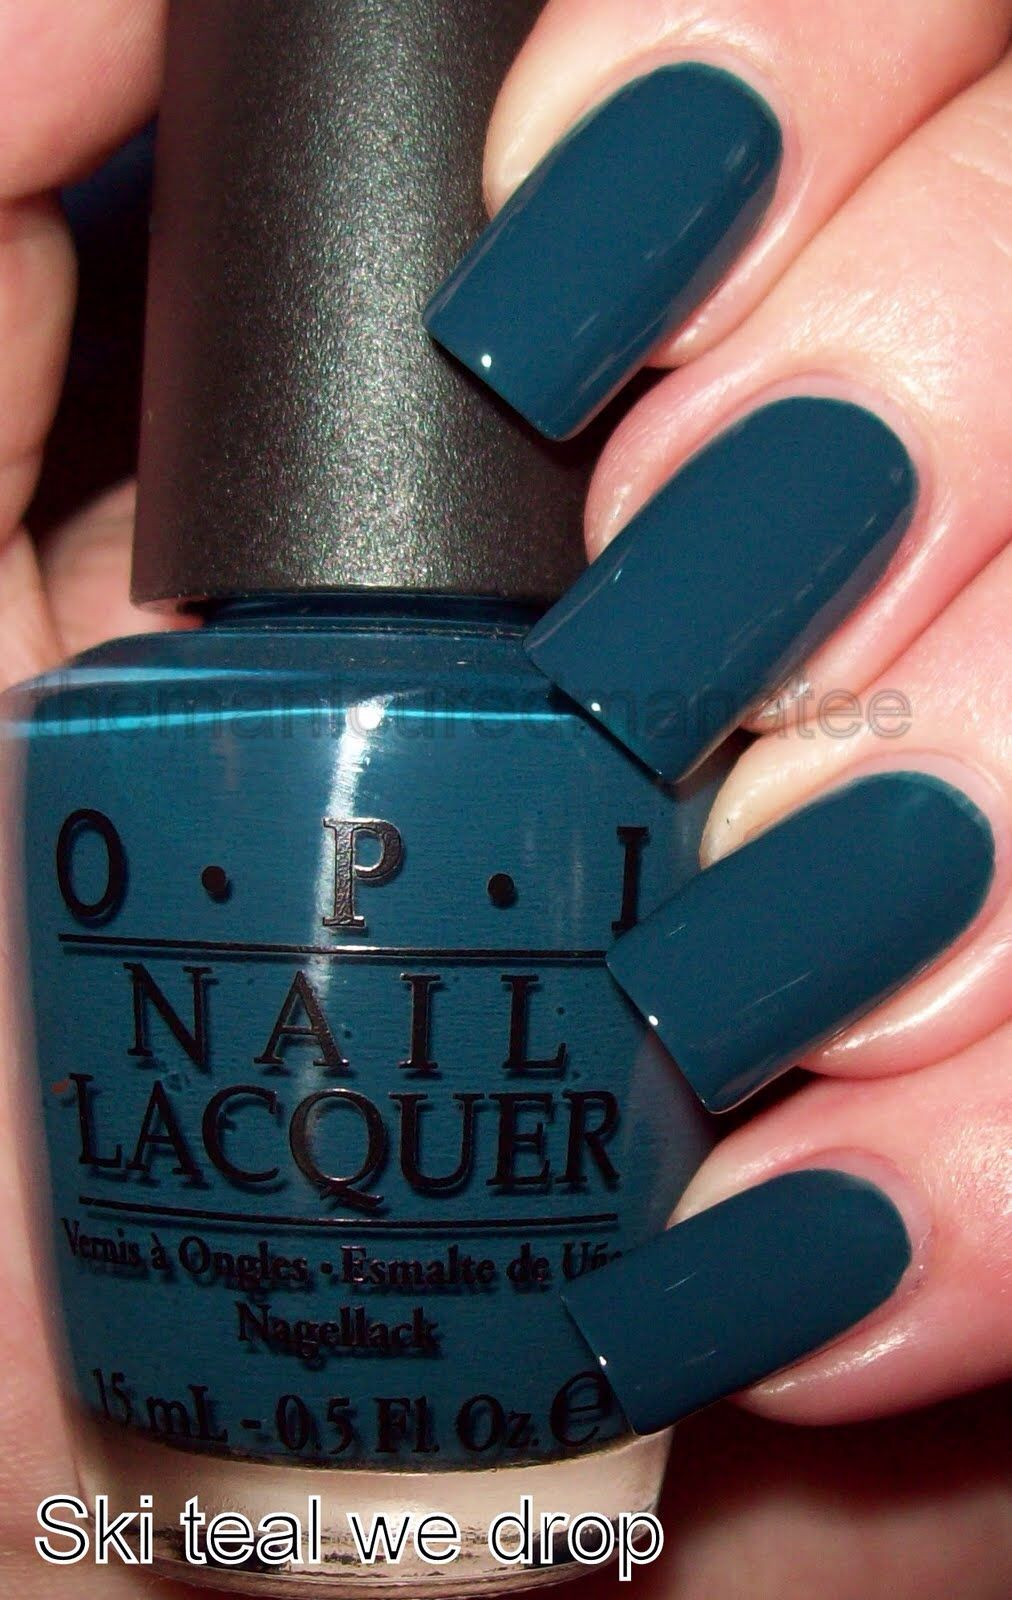 Opi nail polish | Nail Varnish - It Brings Out The Girlie Side In Me ...